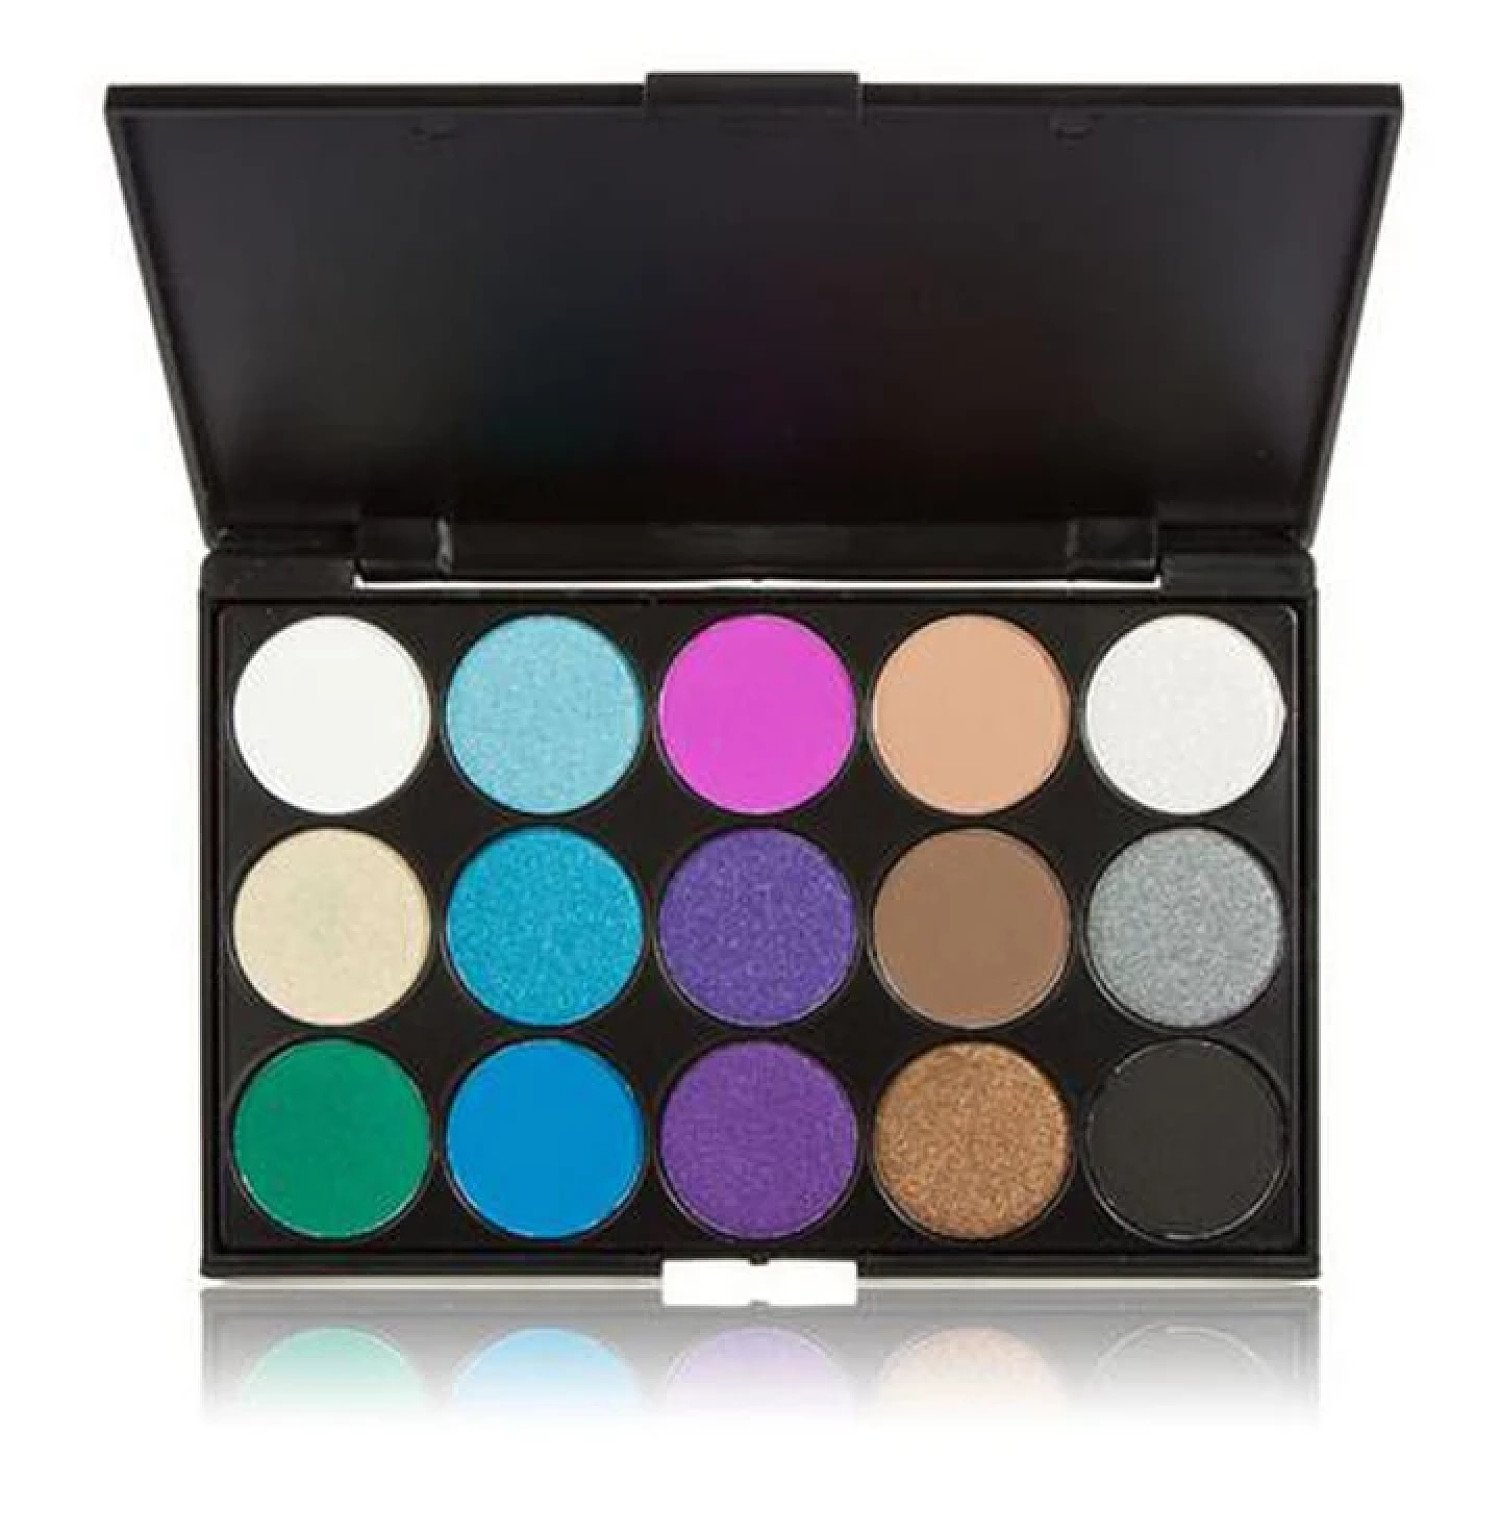 15 Colours Matte/Shimmer Eyeshadow Palette #3 Free Postage